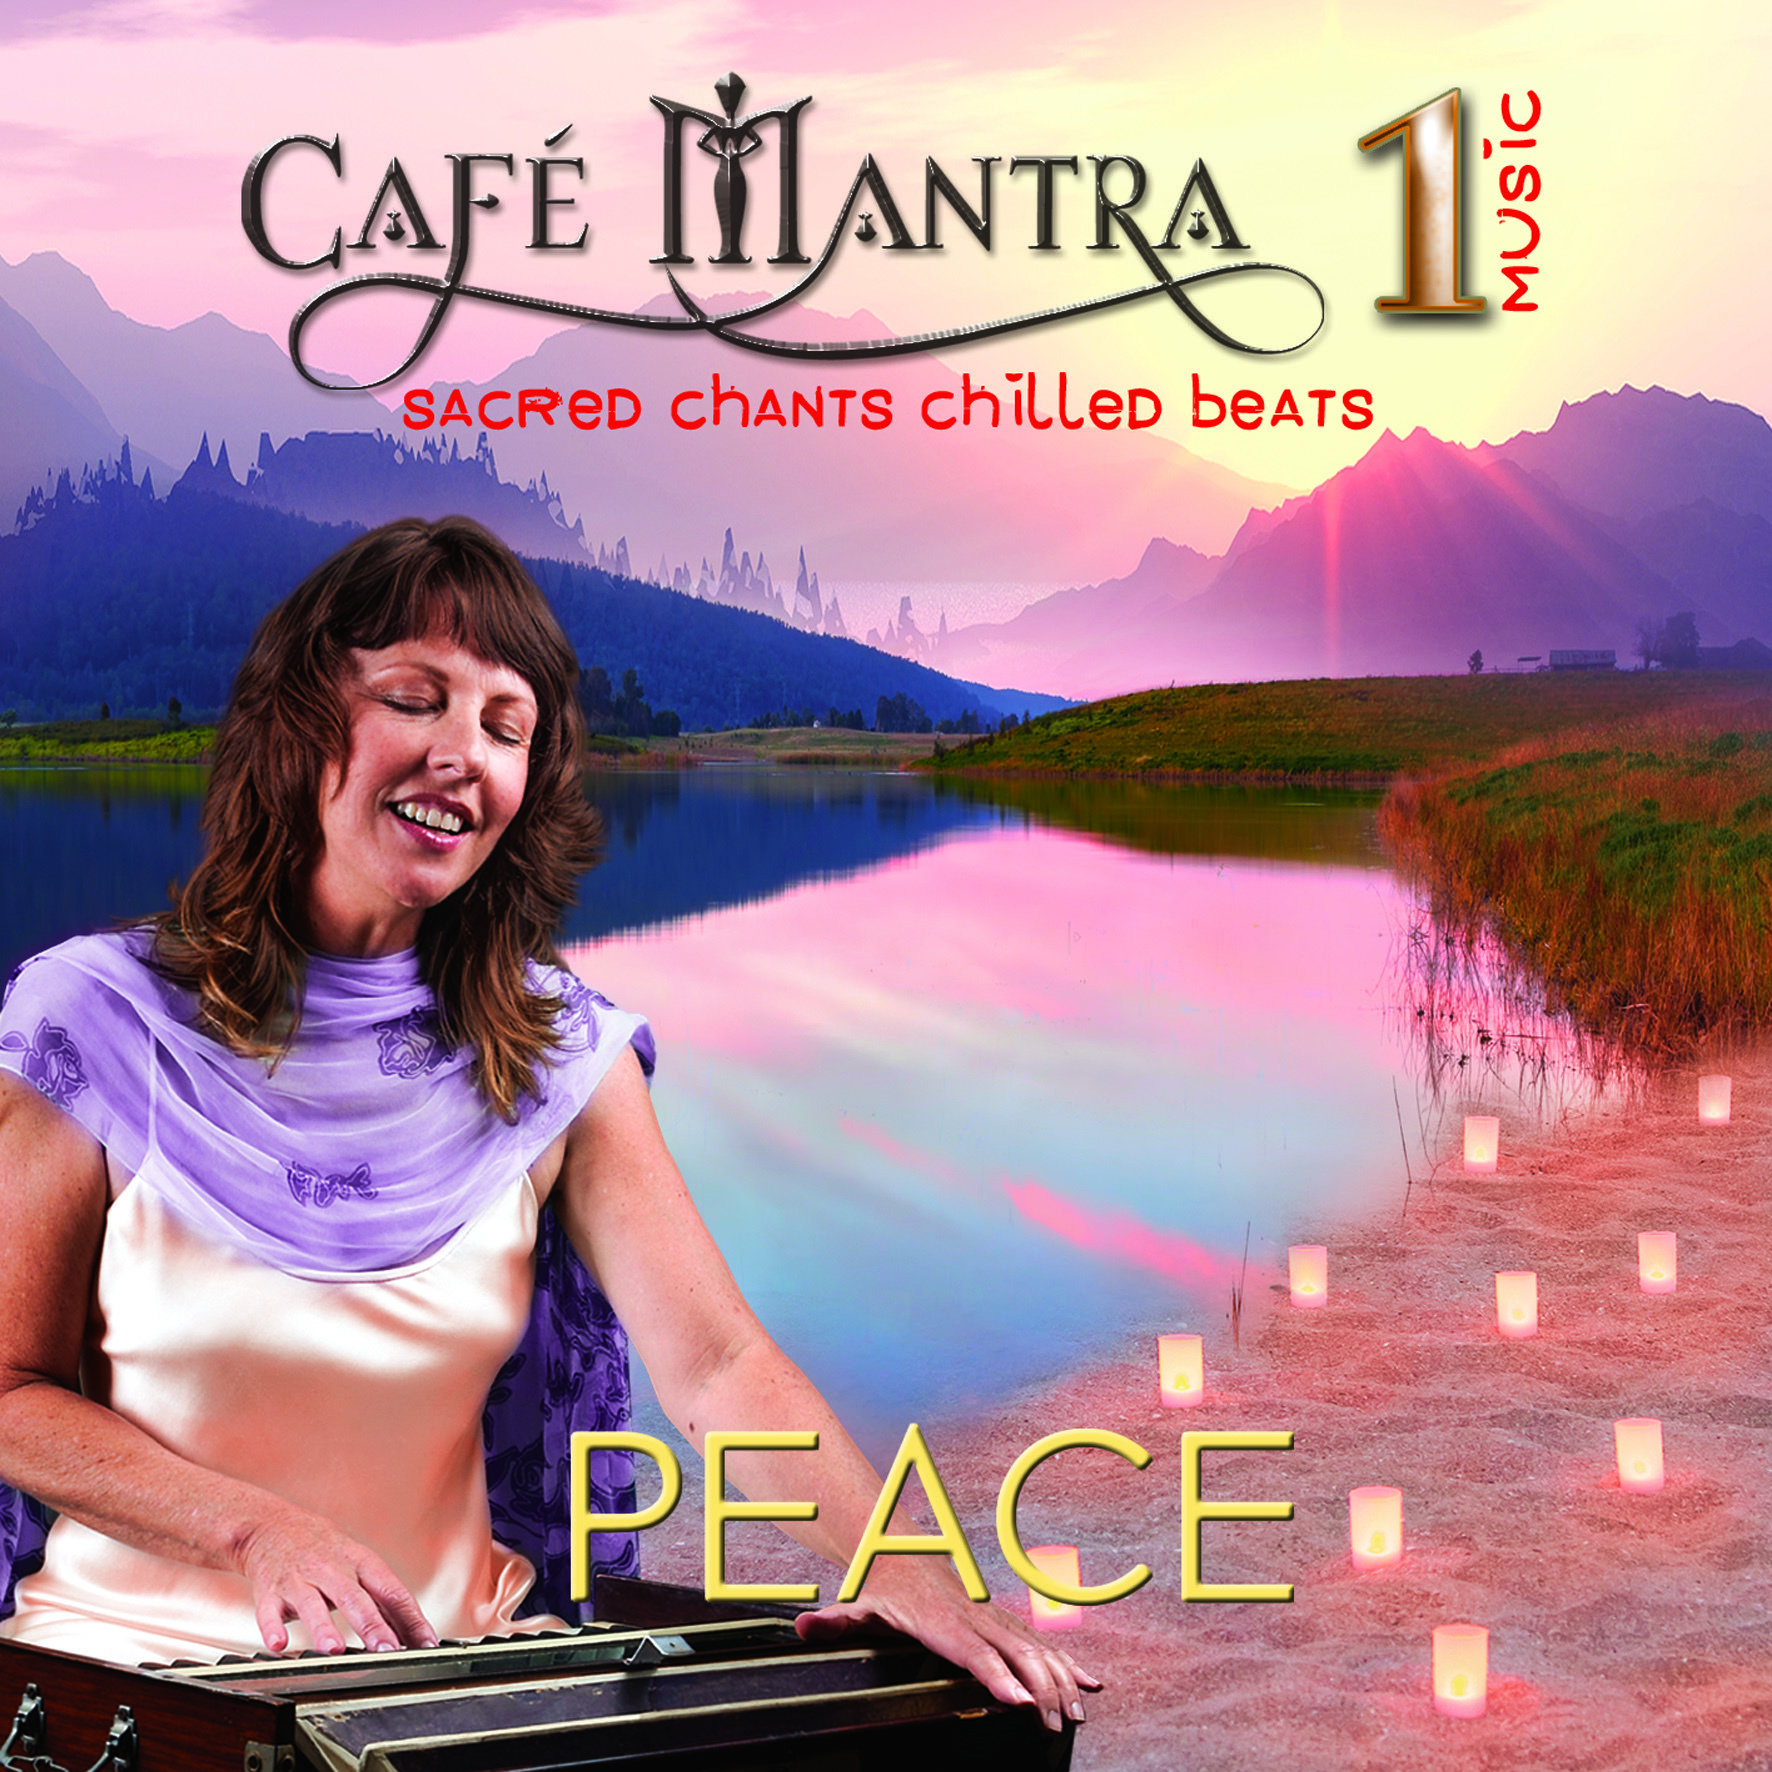 DOWNLOAD: Cafe Mantra Music1 PEACE 00018